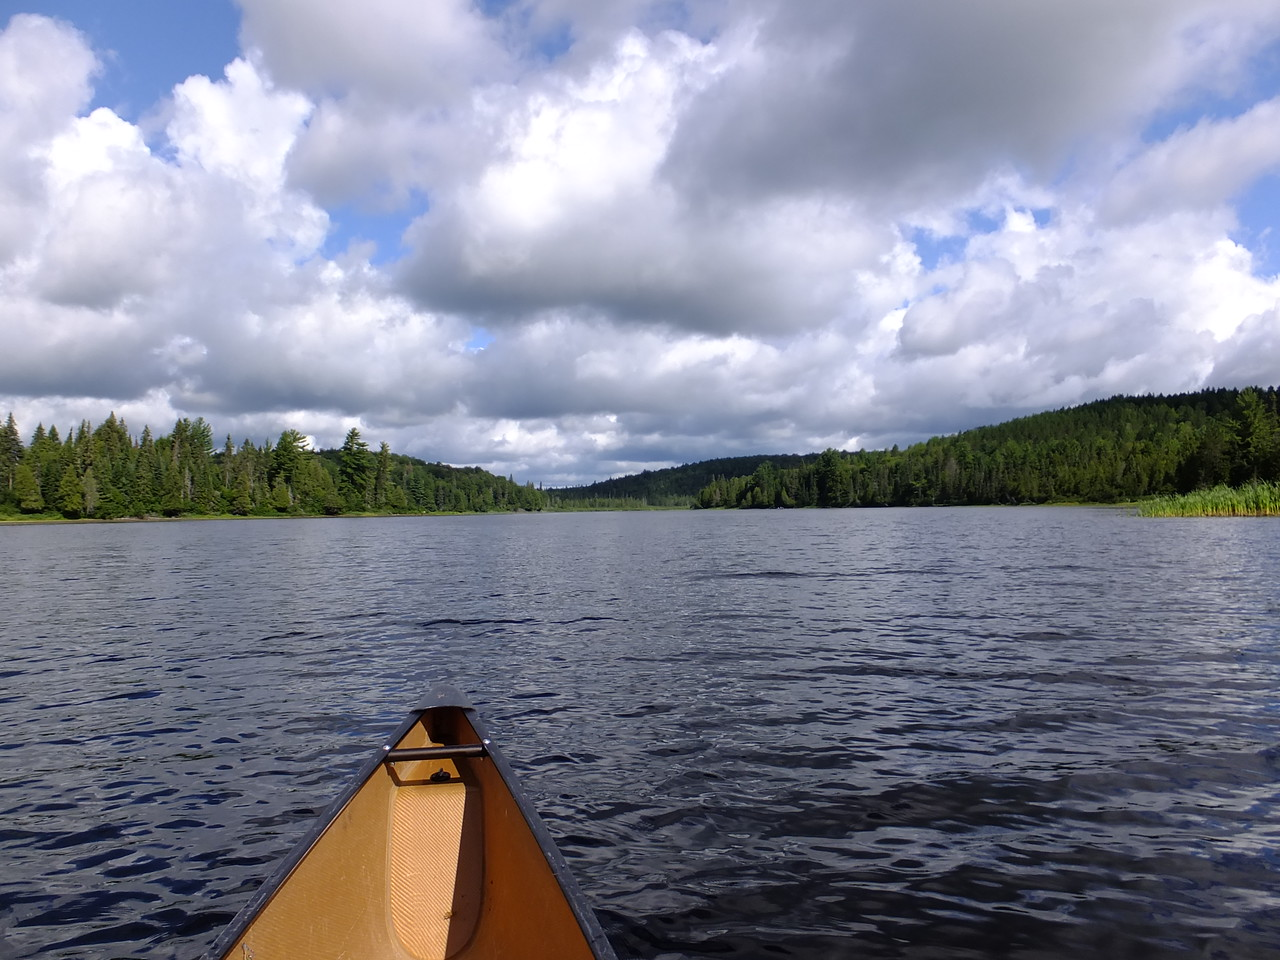 Longer Lake connects Big Trout and Burntroot Lakes